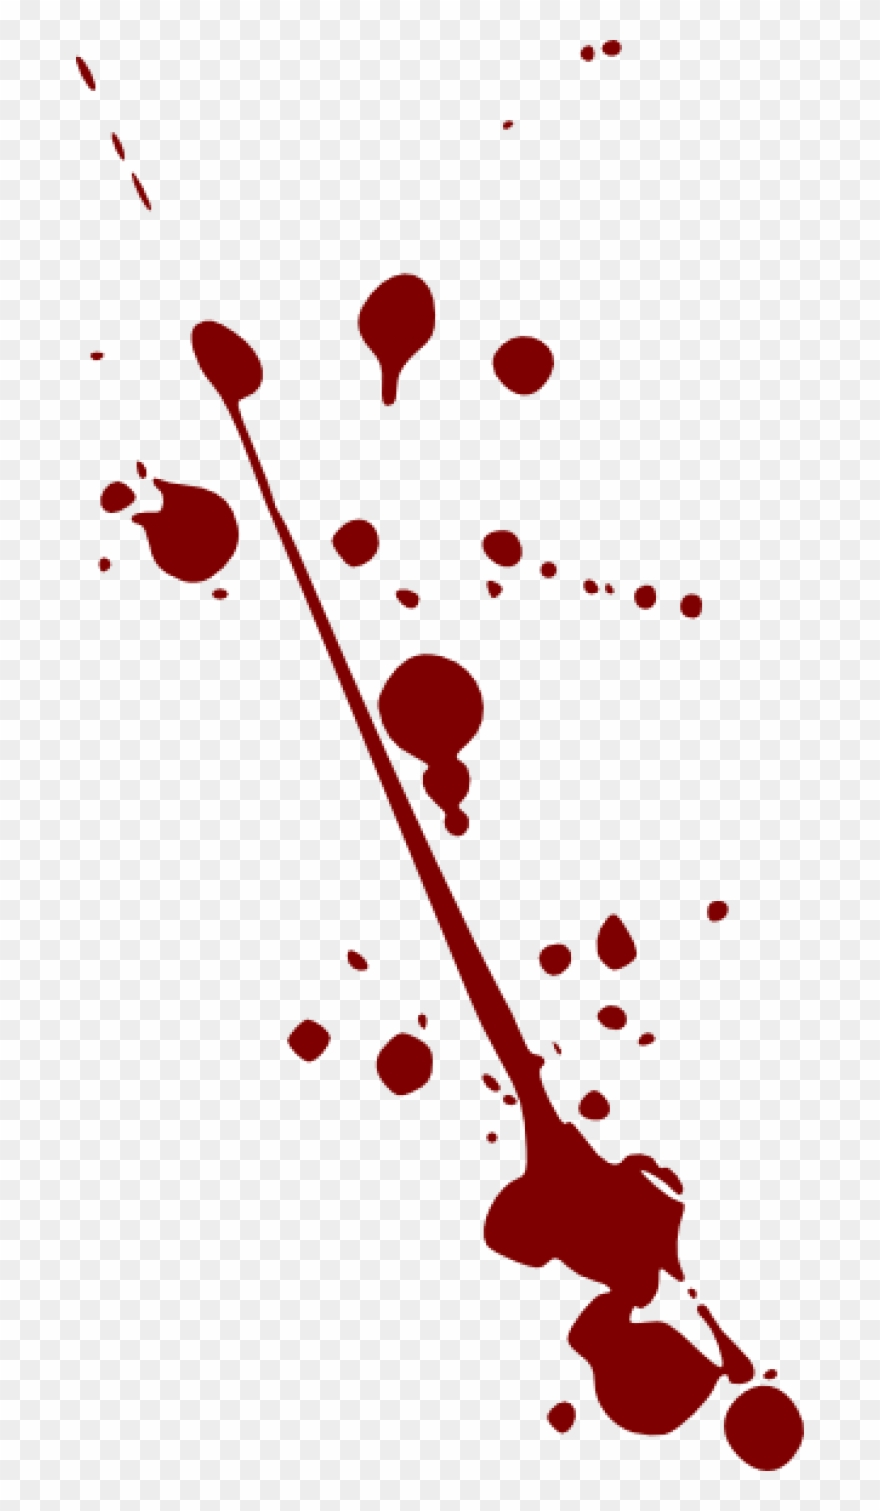 Splatter clip art at. Blood clipart